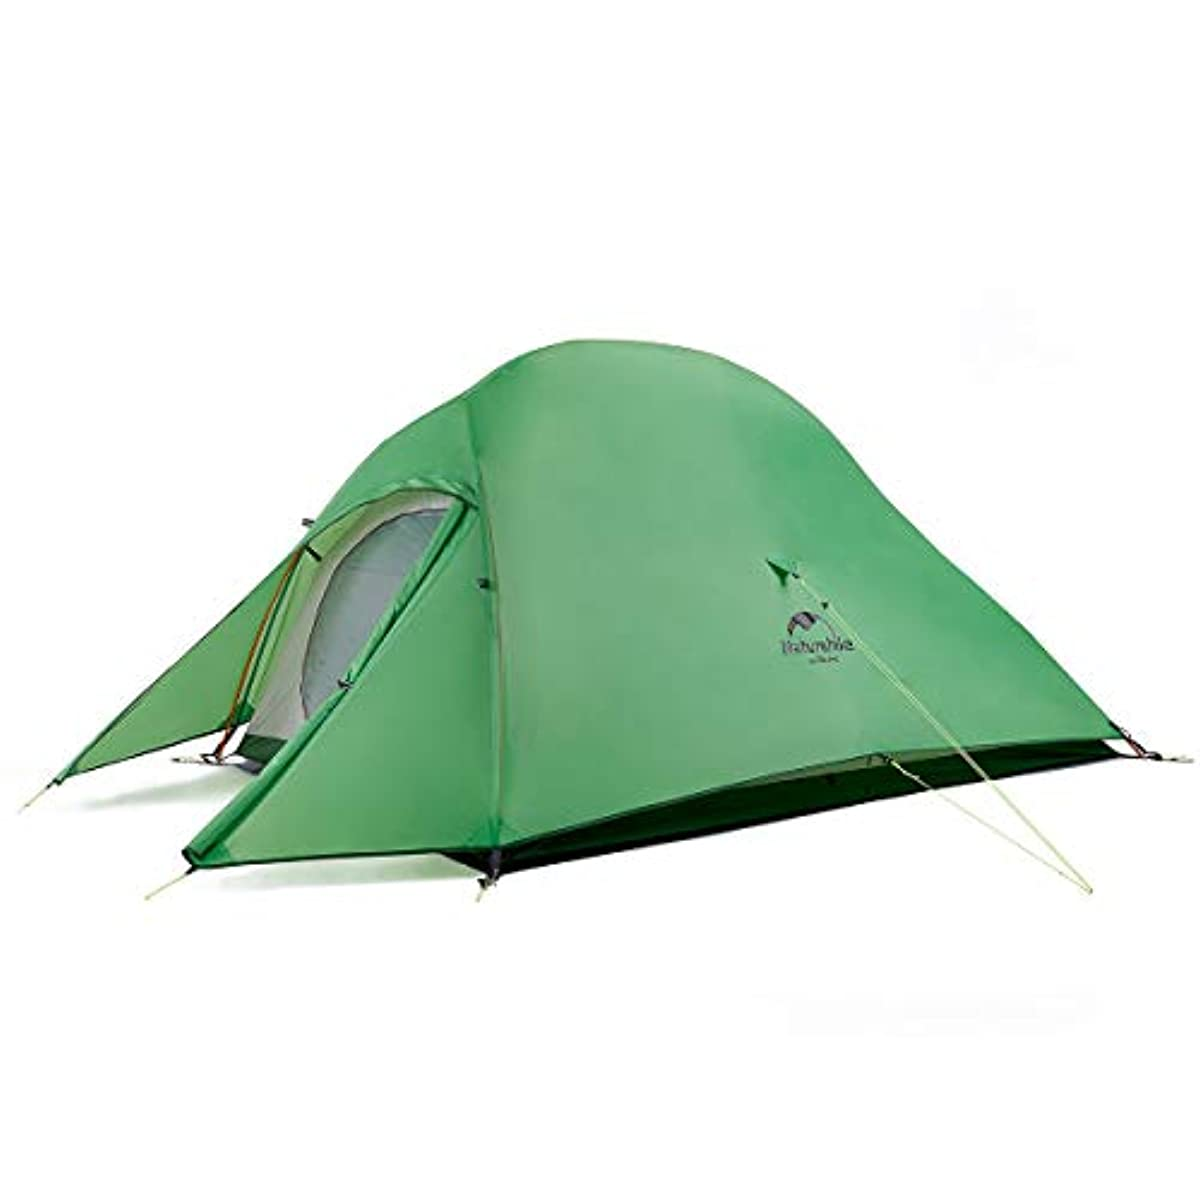 Details about Naturehike Cloud-Up 2 Ultralight Tent Backpacking Tent for 2 Person Hiking C&i  sc 1 st  eBay & Naturehike Cloud-Up 2 Ultralight Tent Backpacking Tent for 2 Person ...